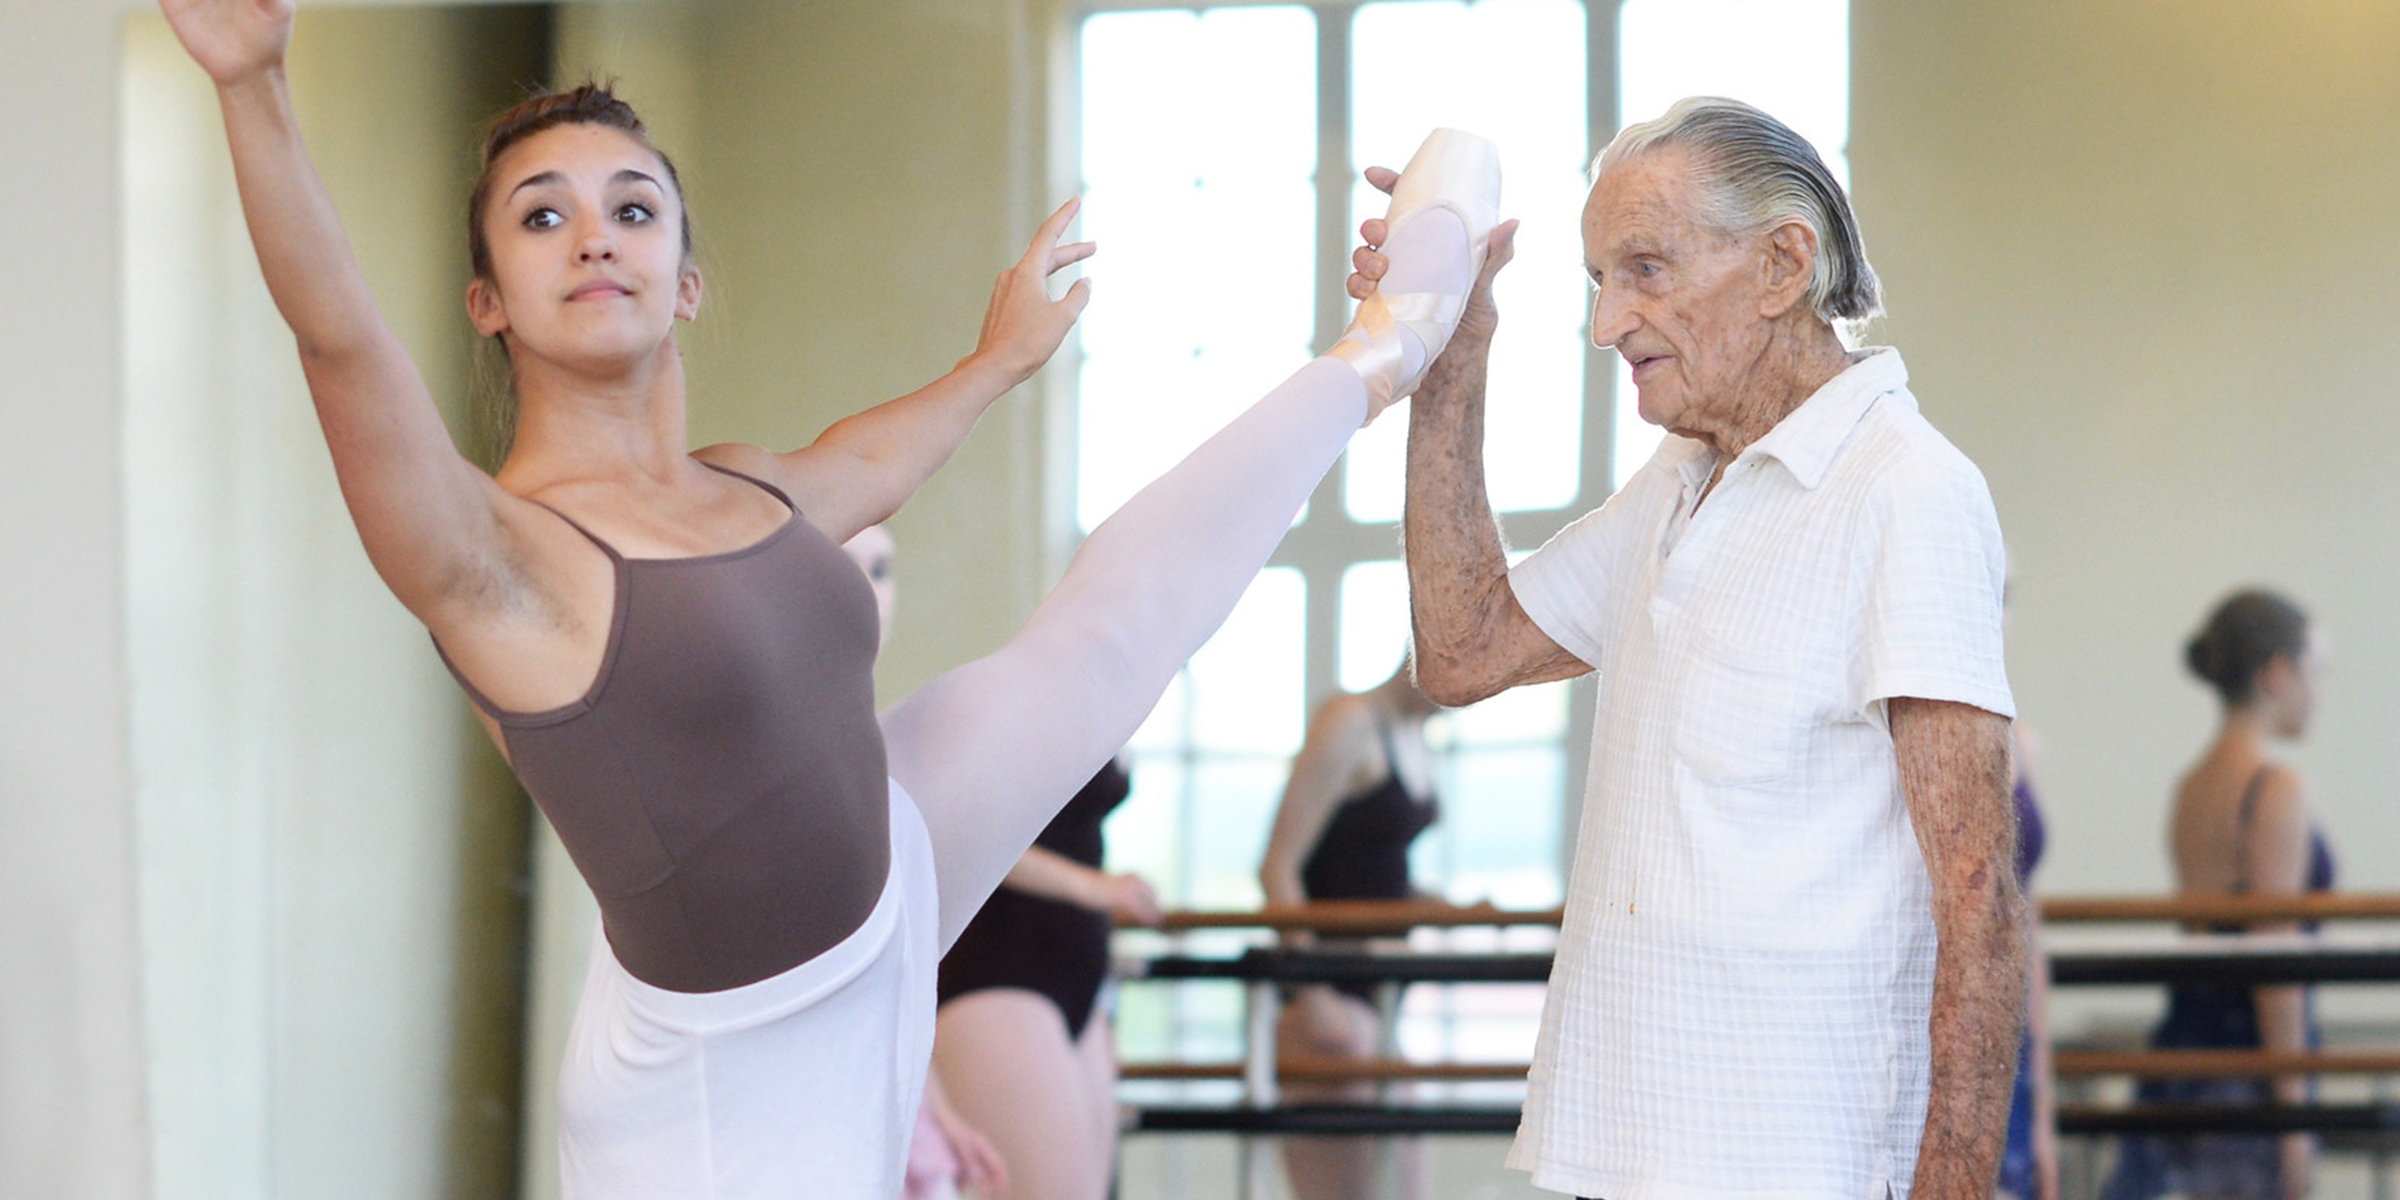 100-year-old ballet teacher shares